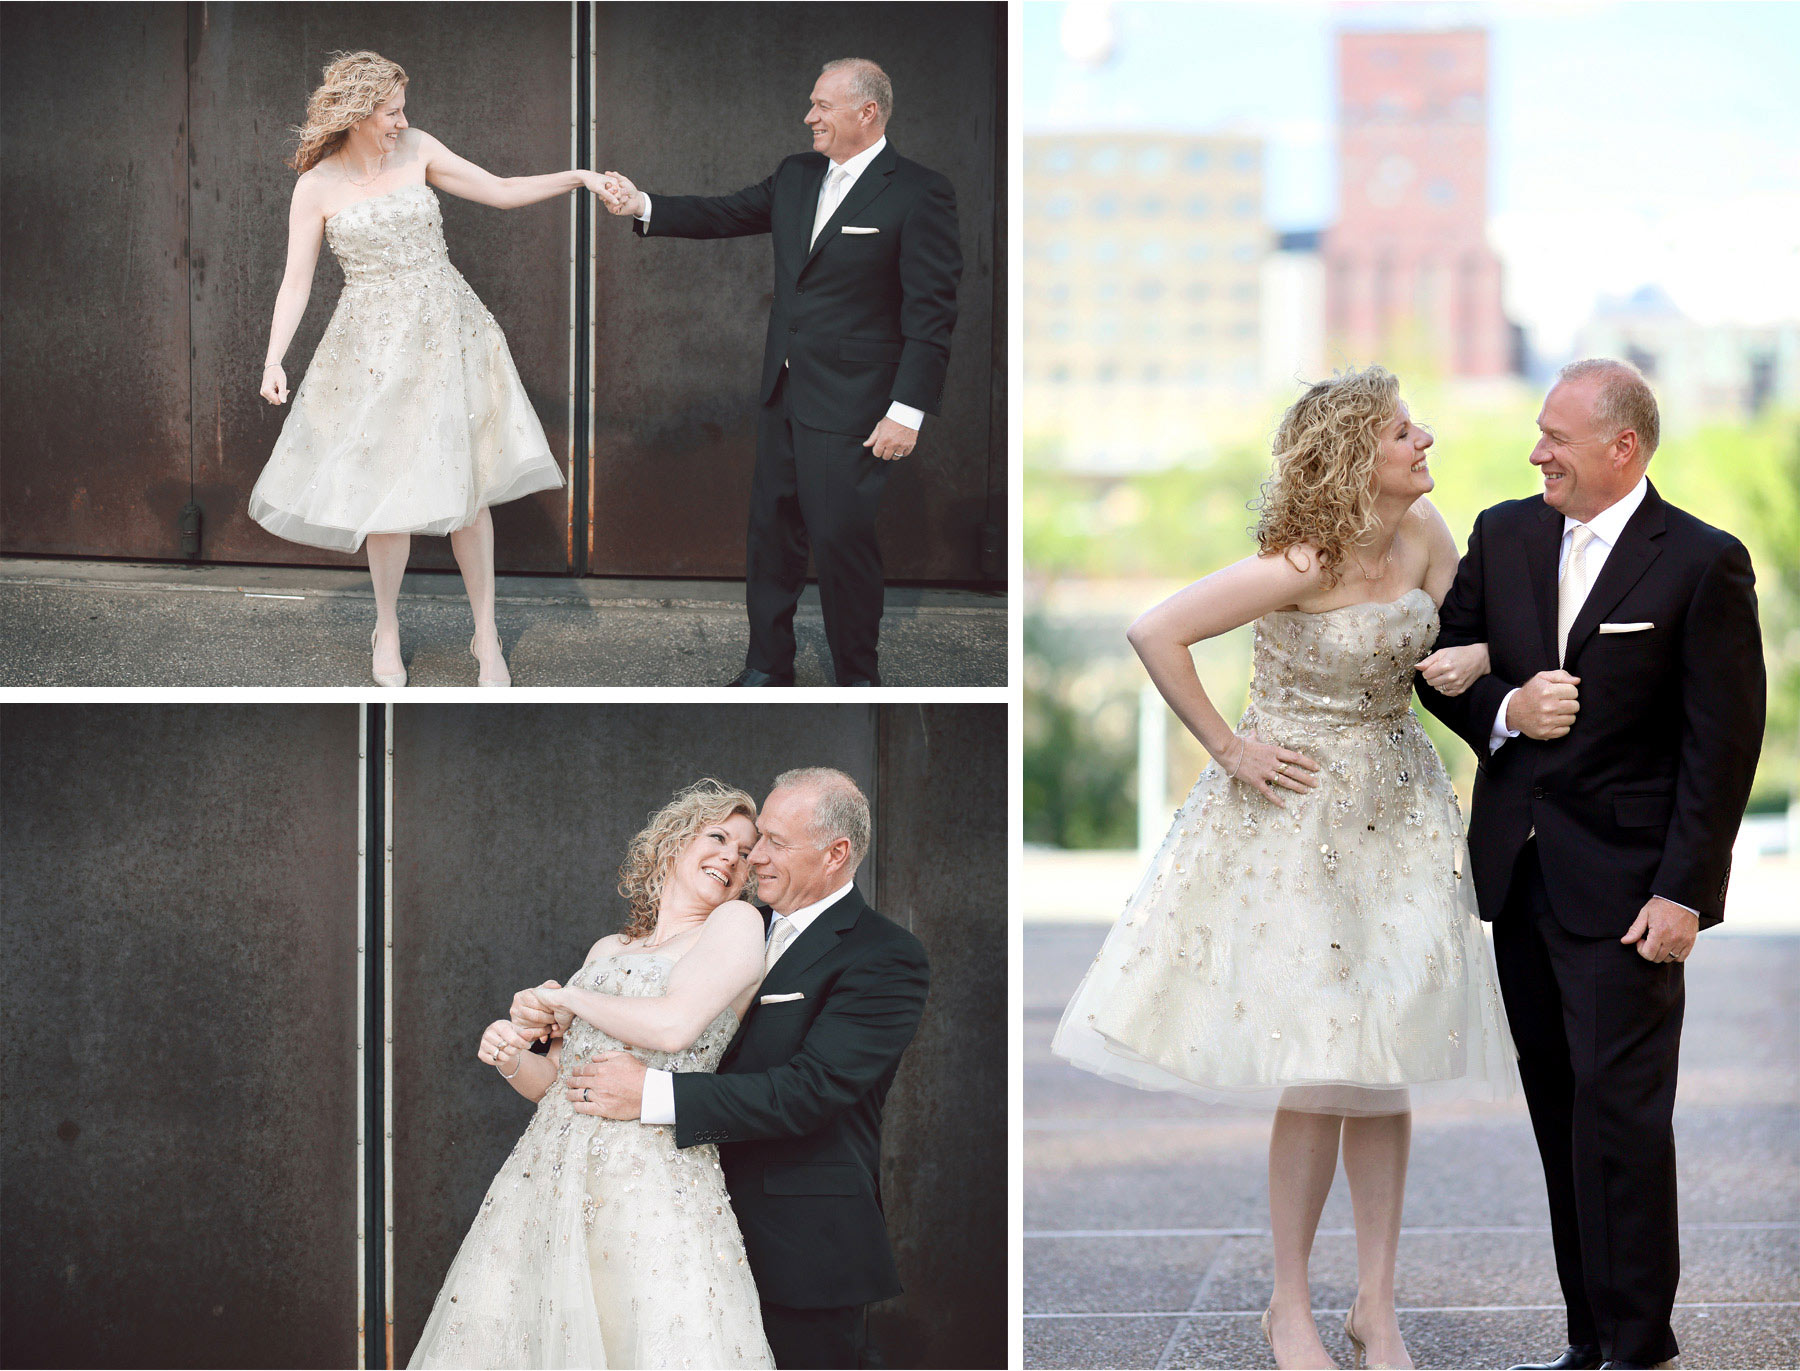 03-Minneapolis-Minnesota-Wedding-Photographer-by-Andrew-Vick-Photography-Spring-Downtown-Bride-Groom-Laughter-Twirl-Spin-Vintage-Dannette-and-Darren.jpg